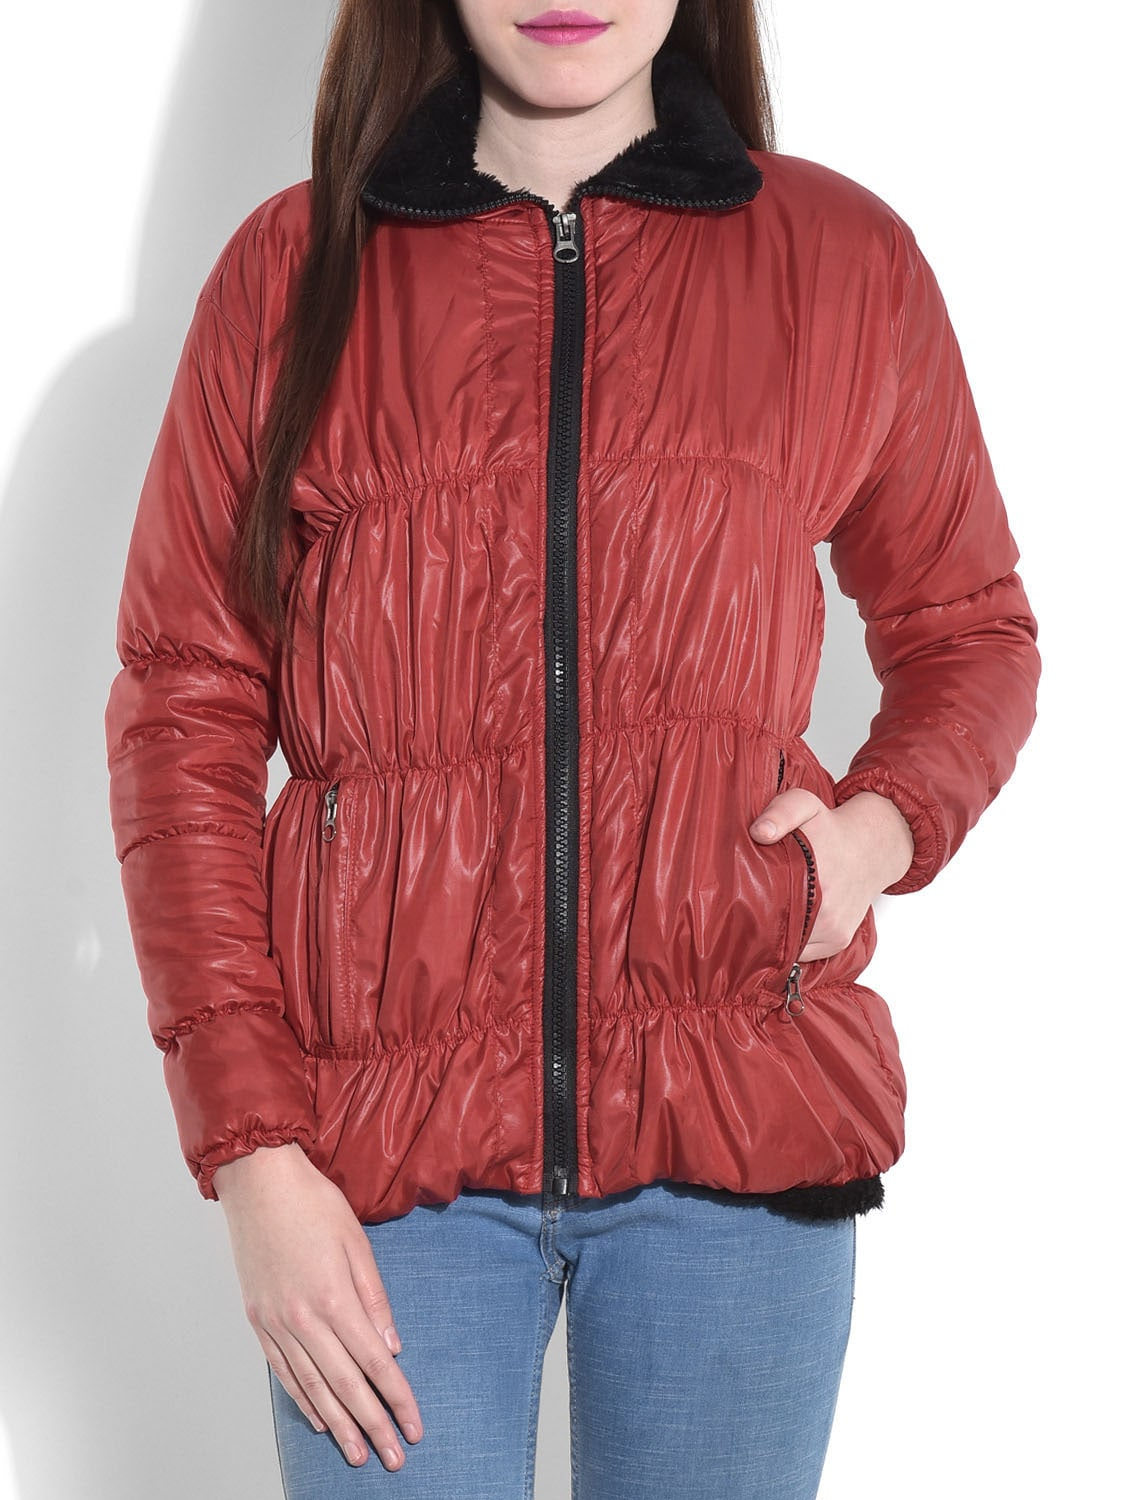 Solid Red Quilted Jacket - By